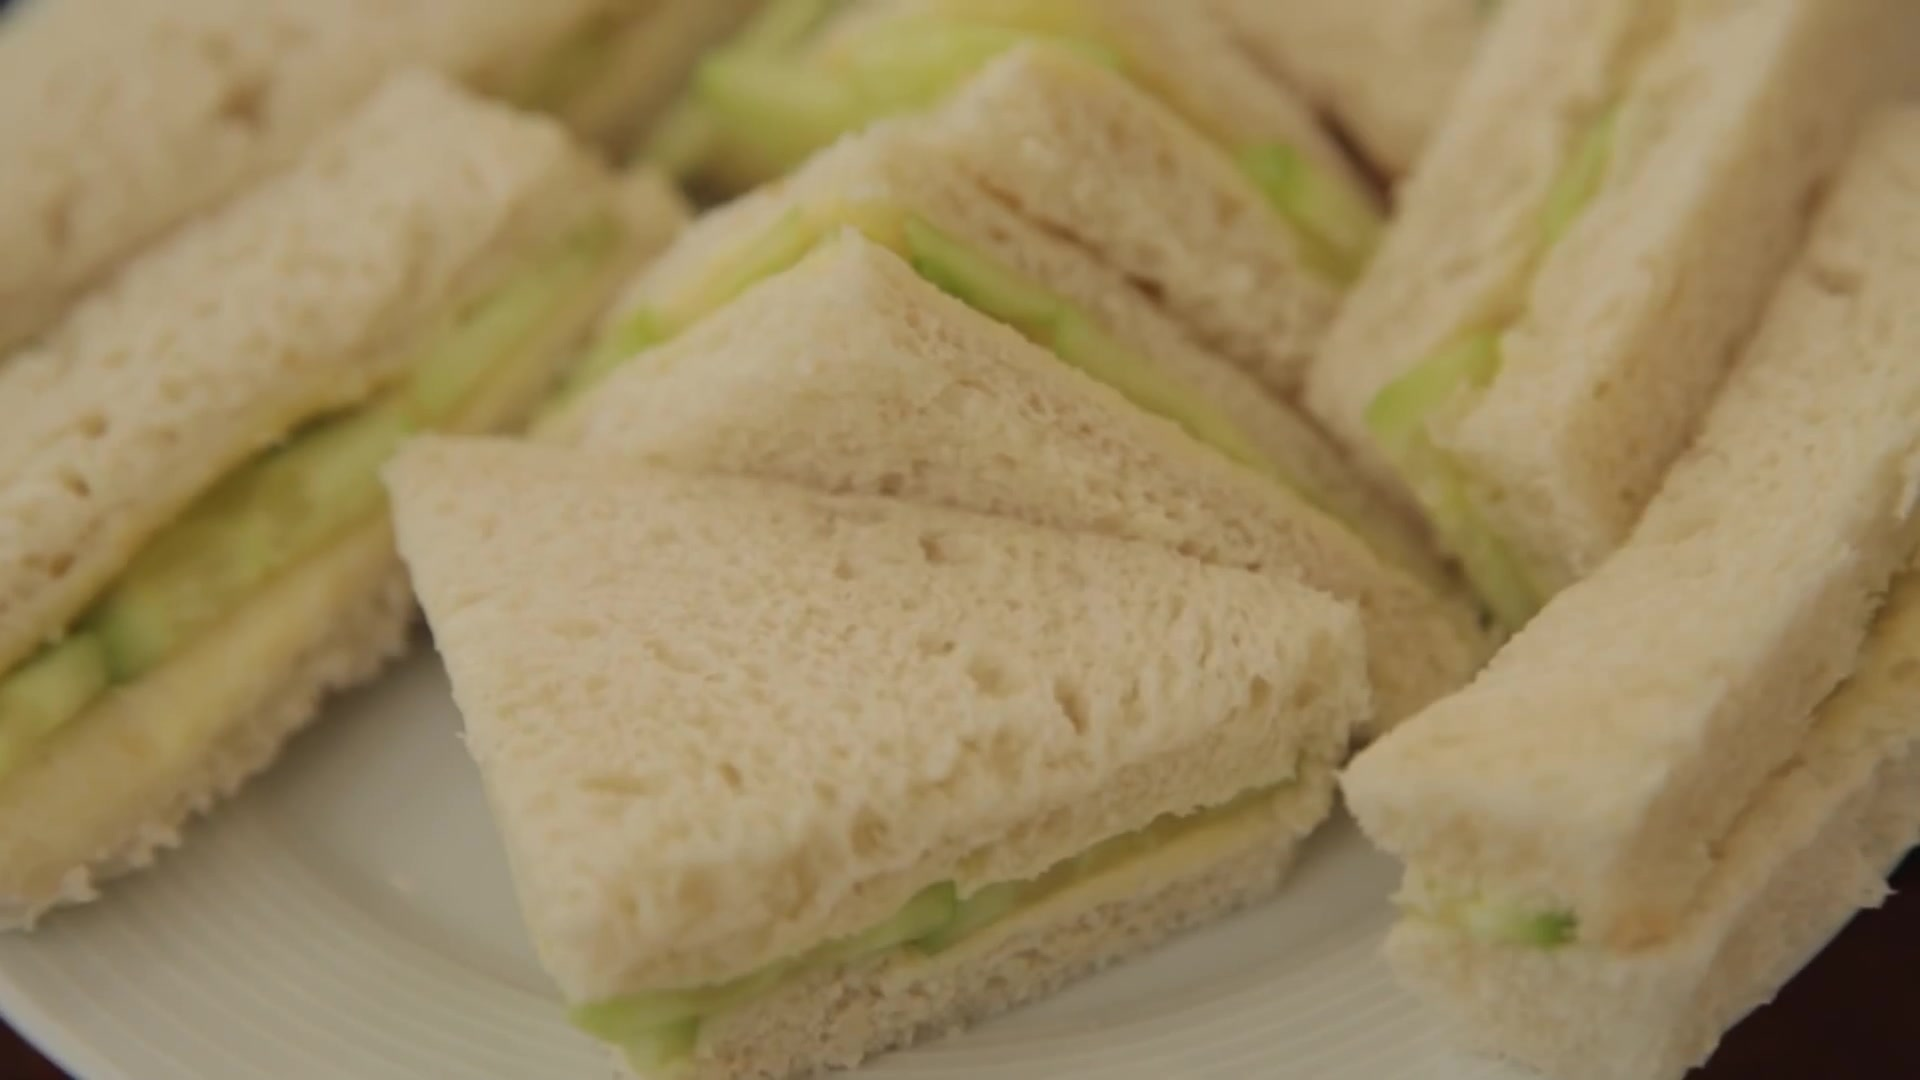 How to Make English Cucumber Sandwiches